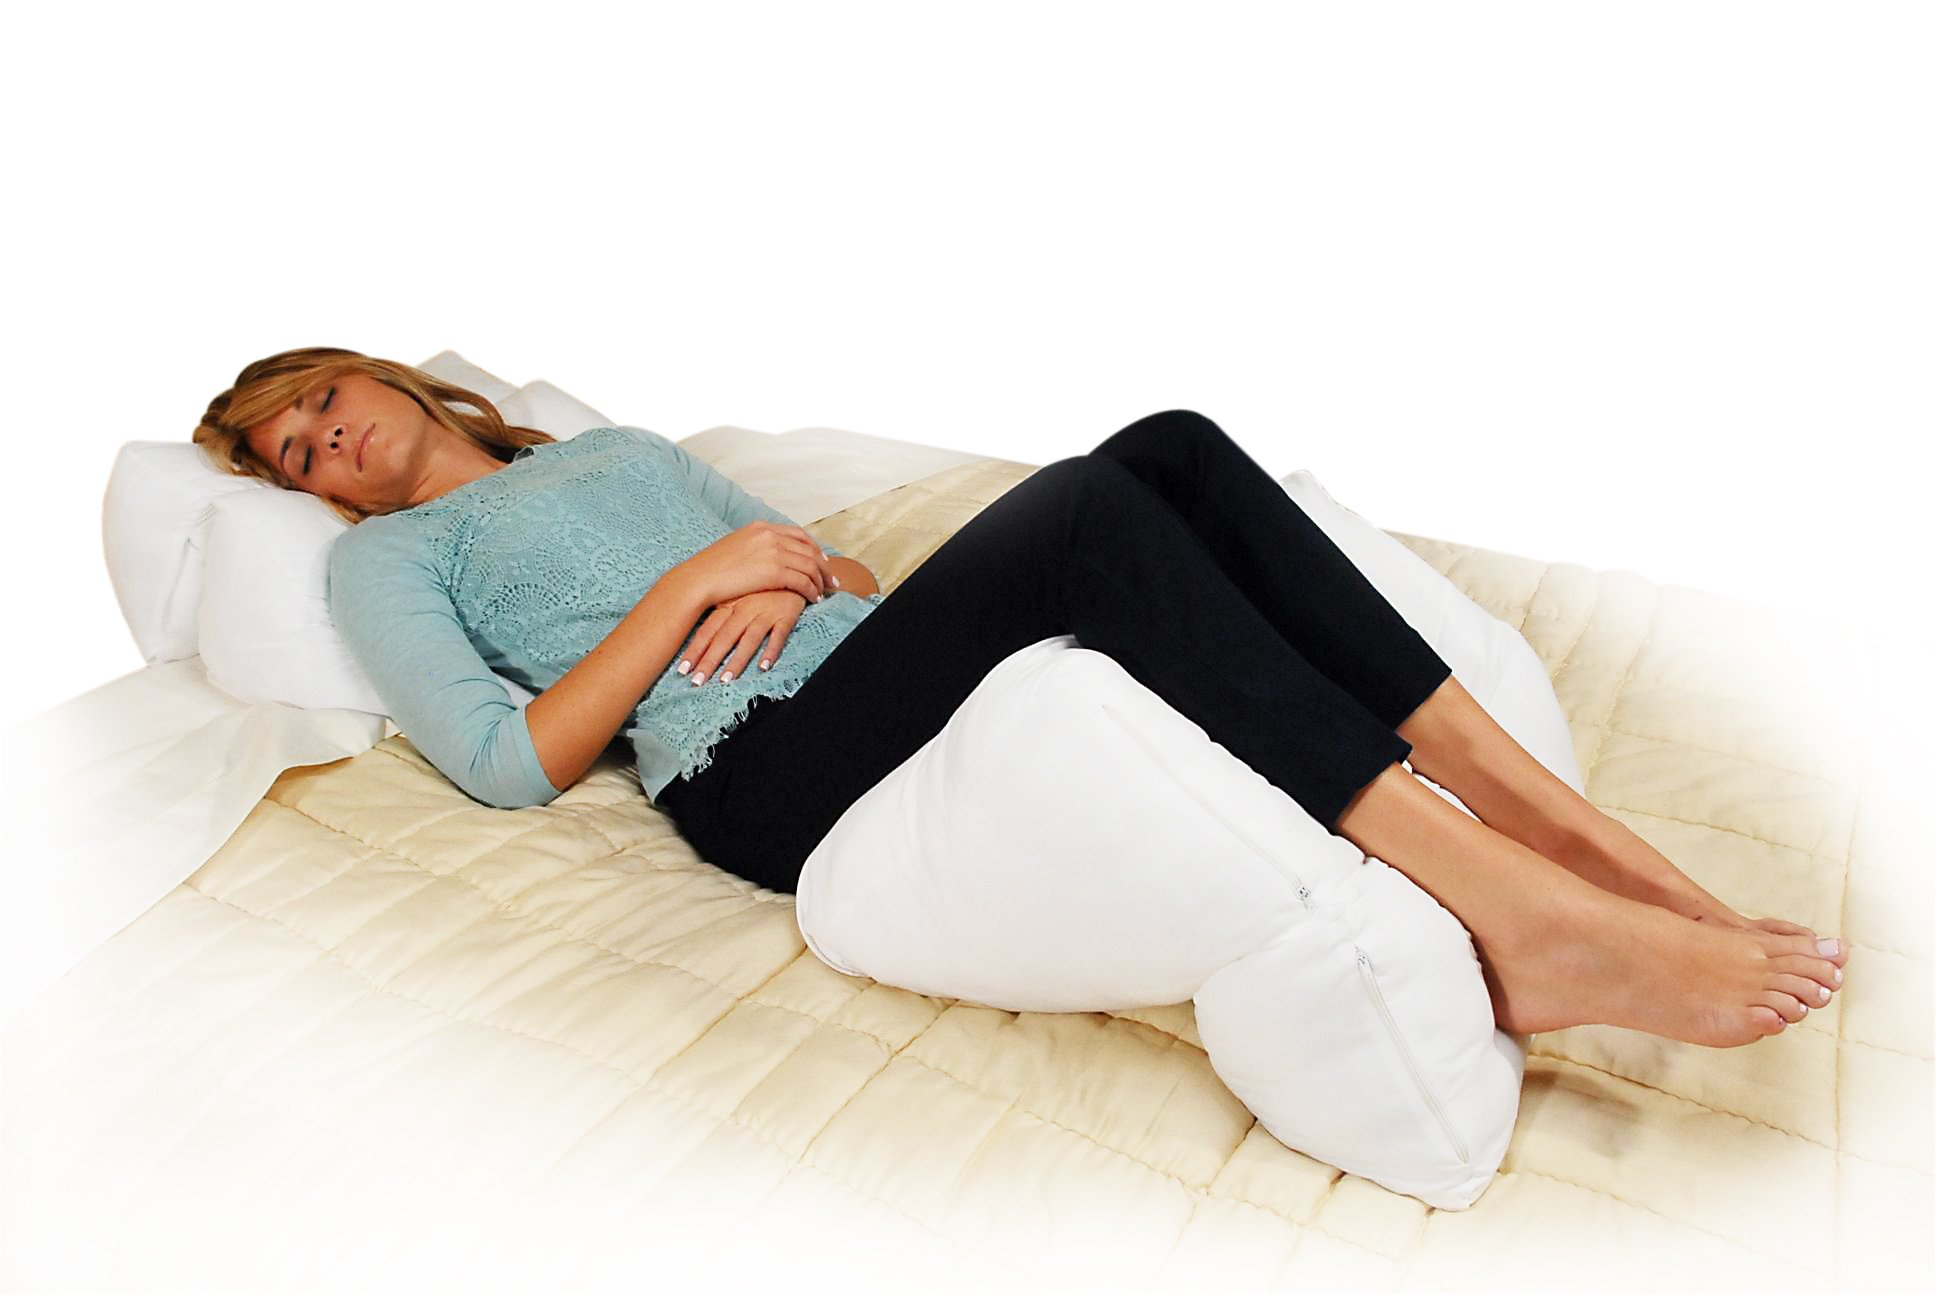 Contour Products 10-in-1 Flip Pillow, King